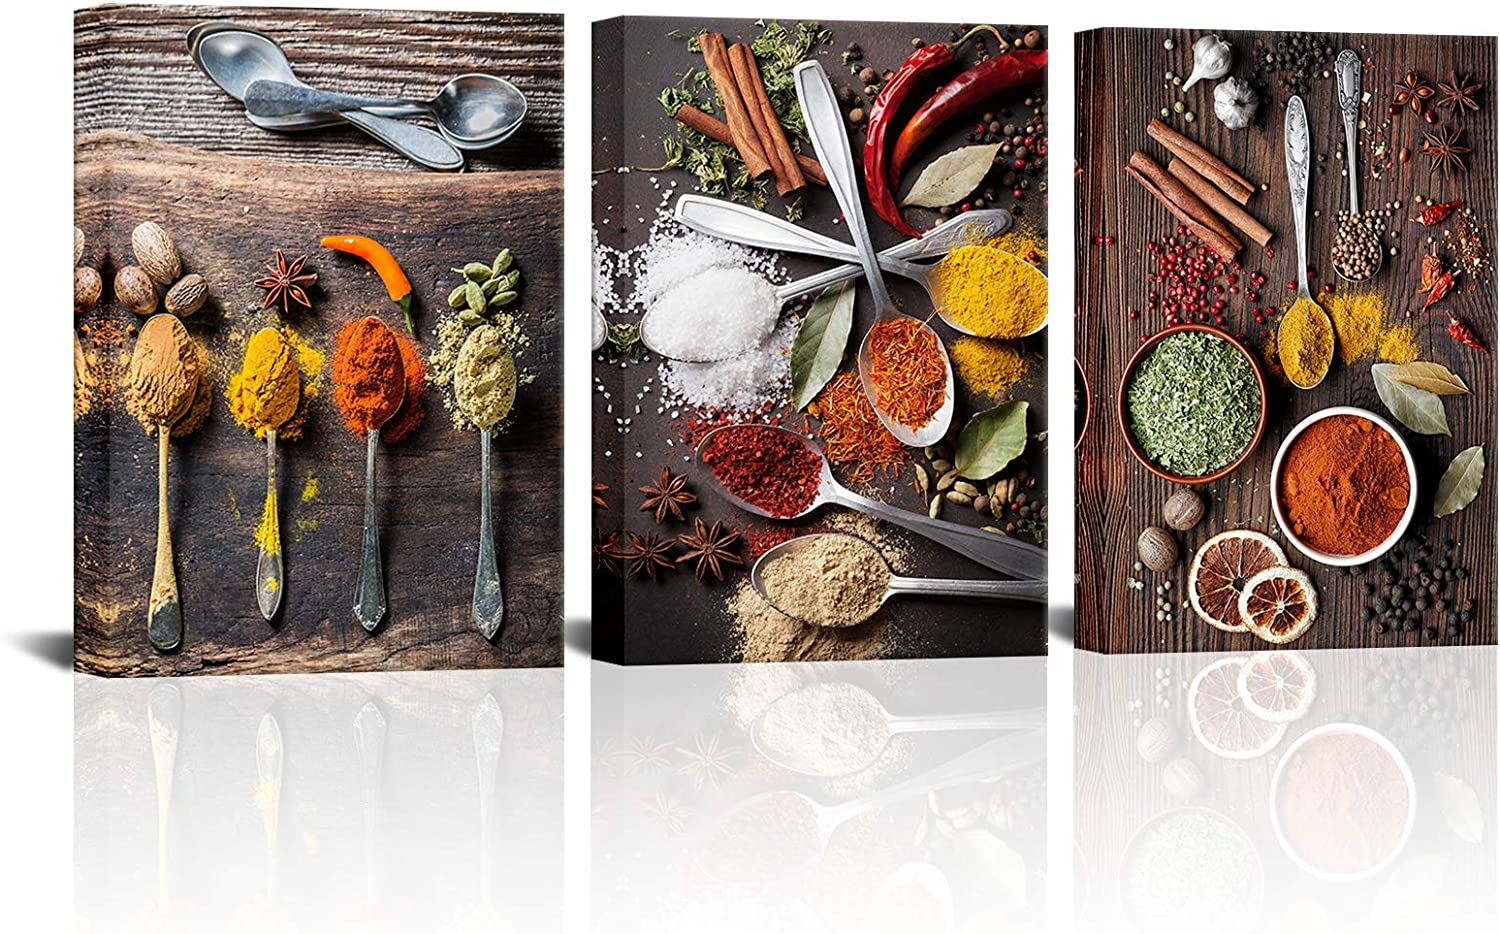 Kalormore Kitchen Pictures Wall Art Decor Colorful Spices in Retro Spoons Canvas Prints Food Photo Decoration Stretched on Wood Frame Ready to Hang